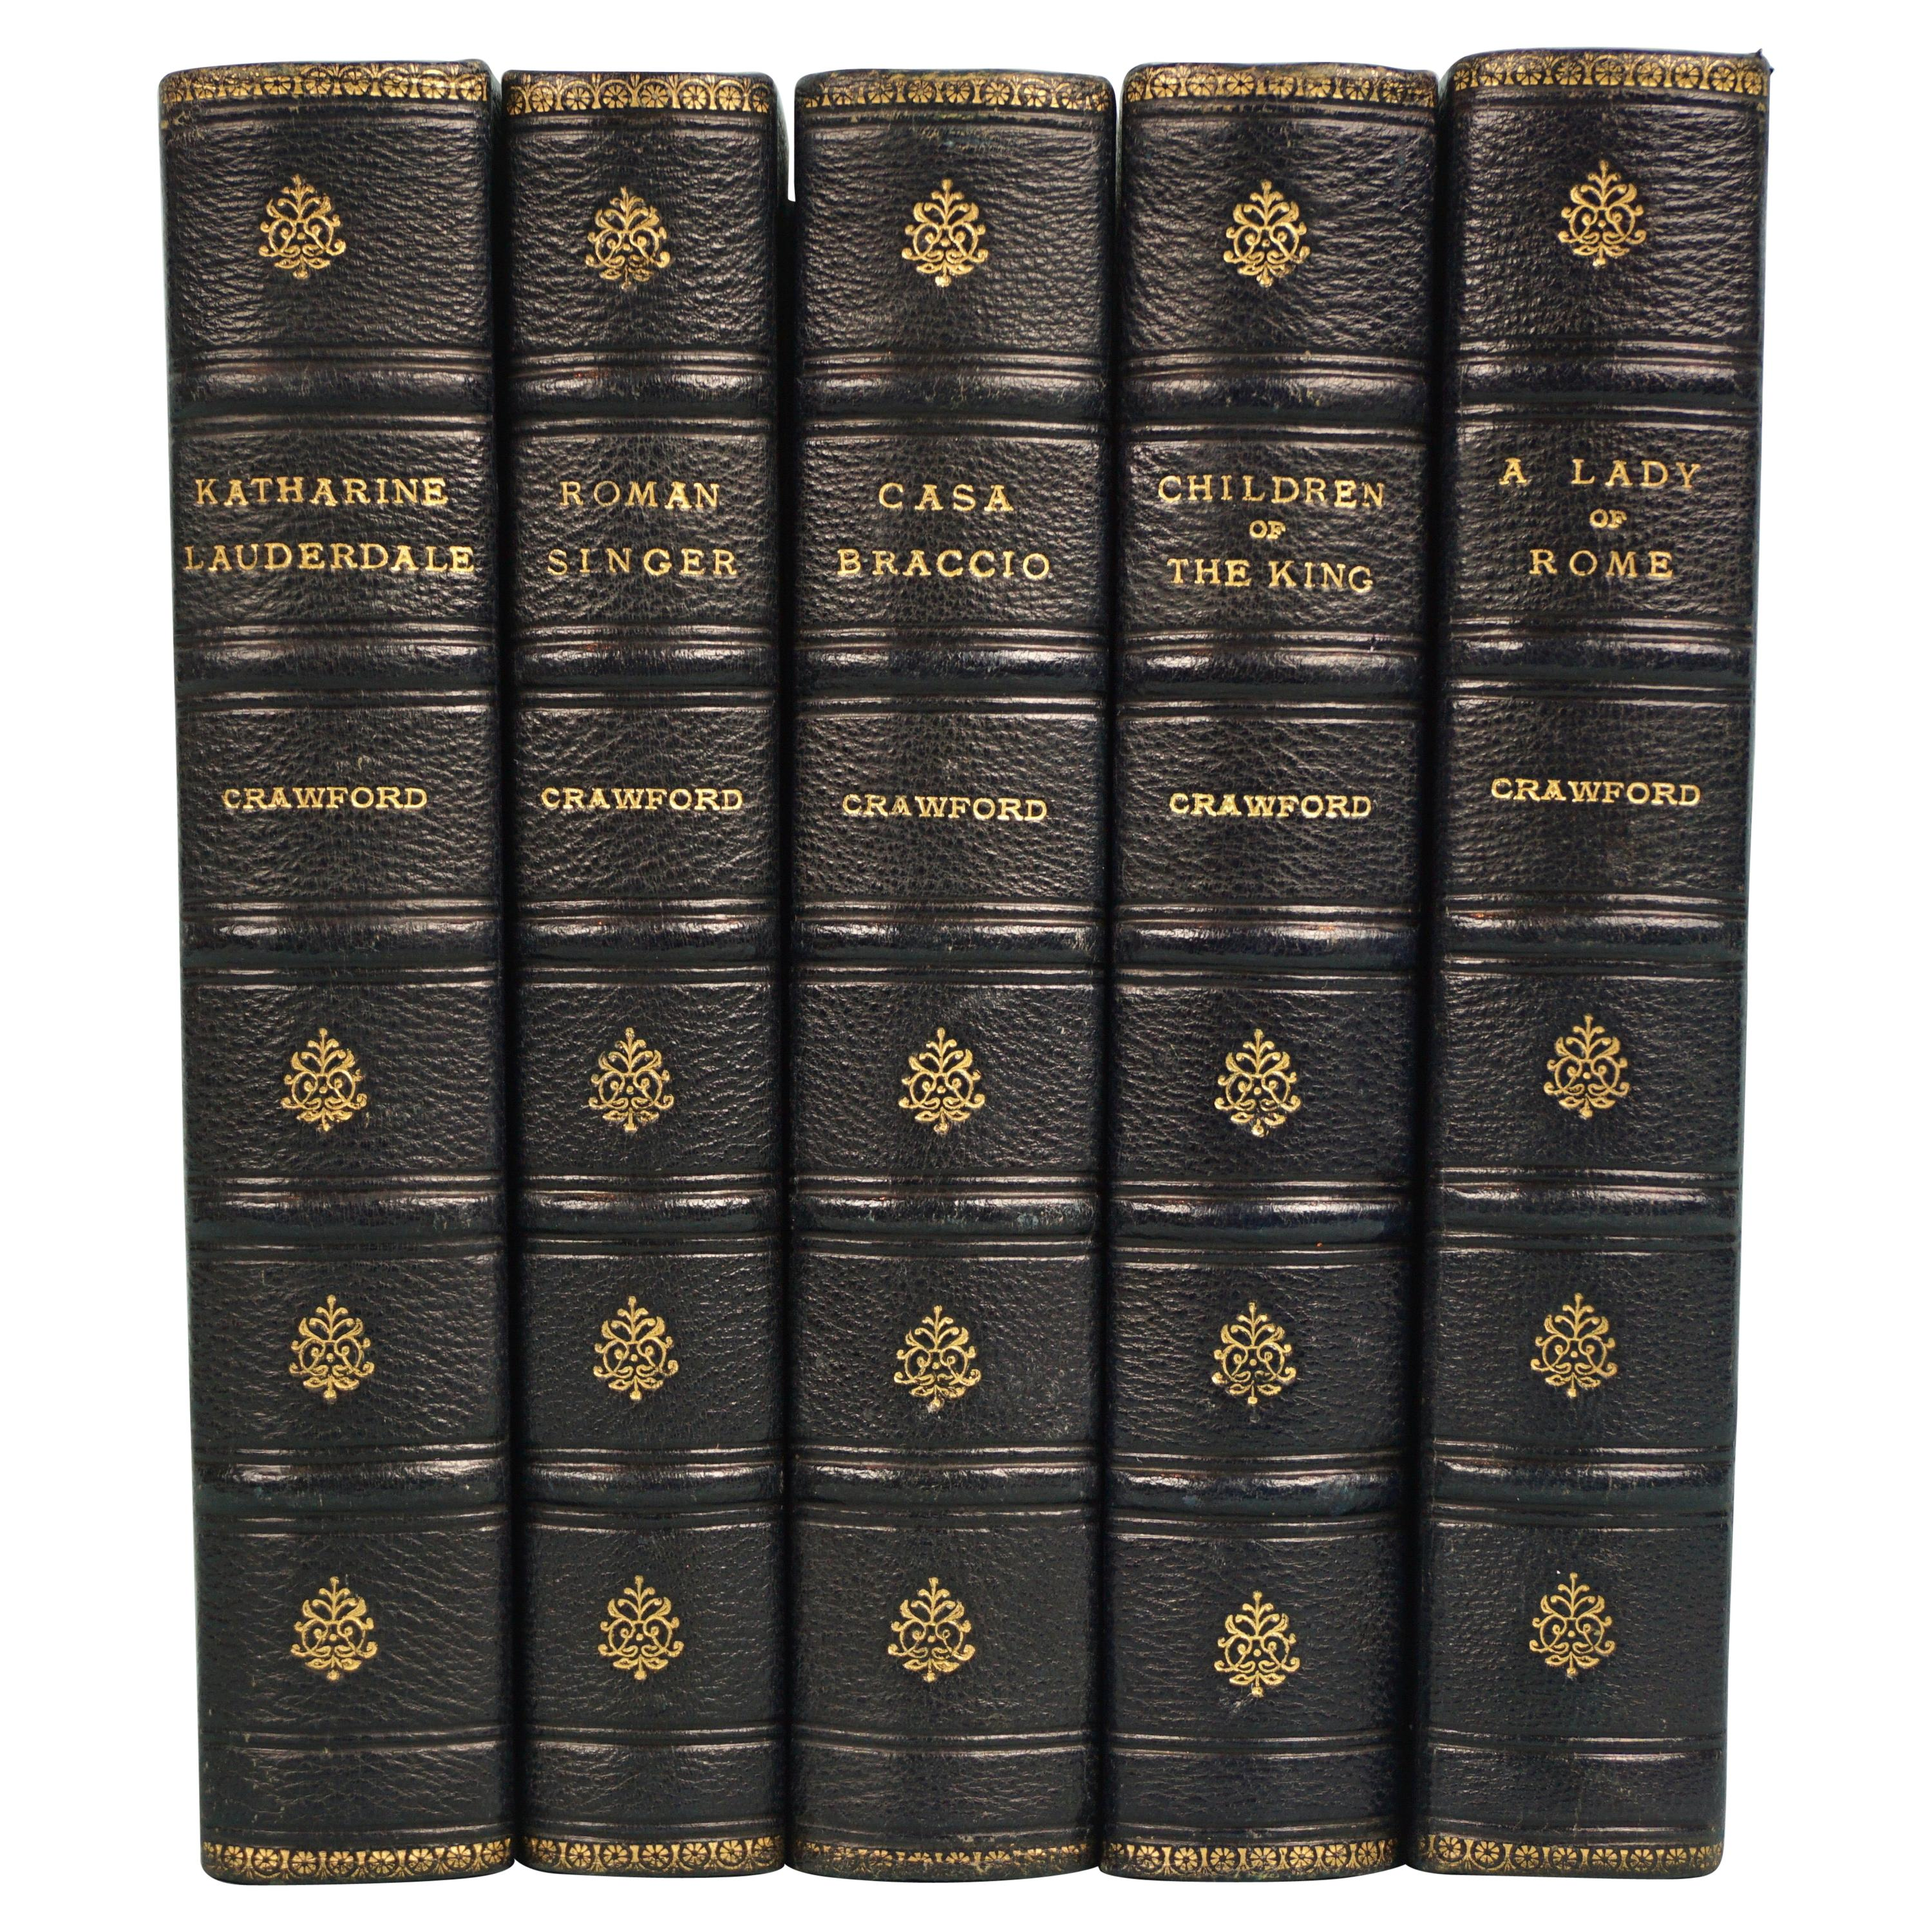 Works of F. Crawford in 5 Volumes Bound in Blue Morocco Leather with Gilt Spines